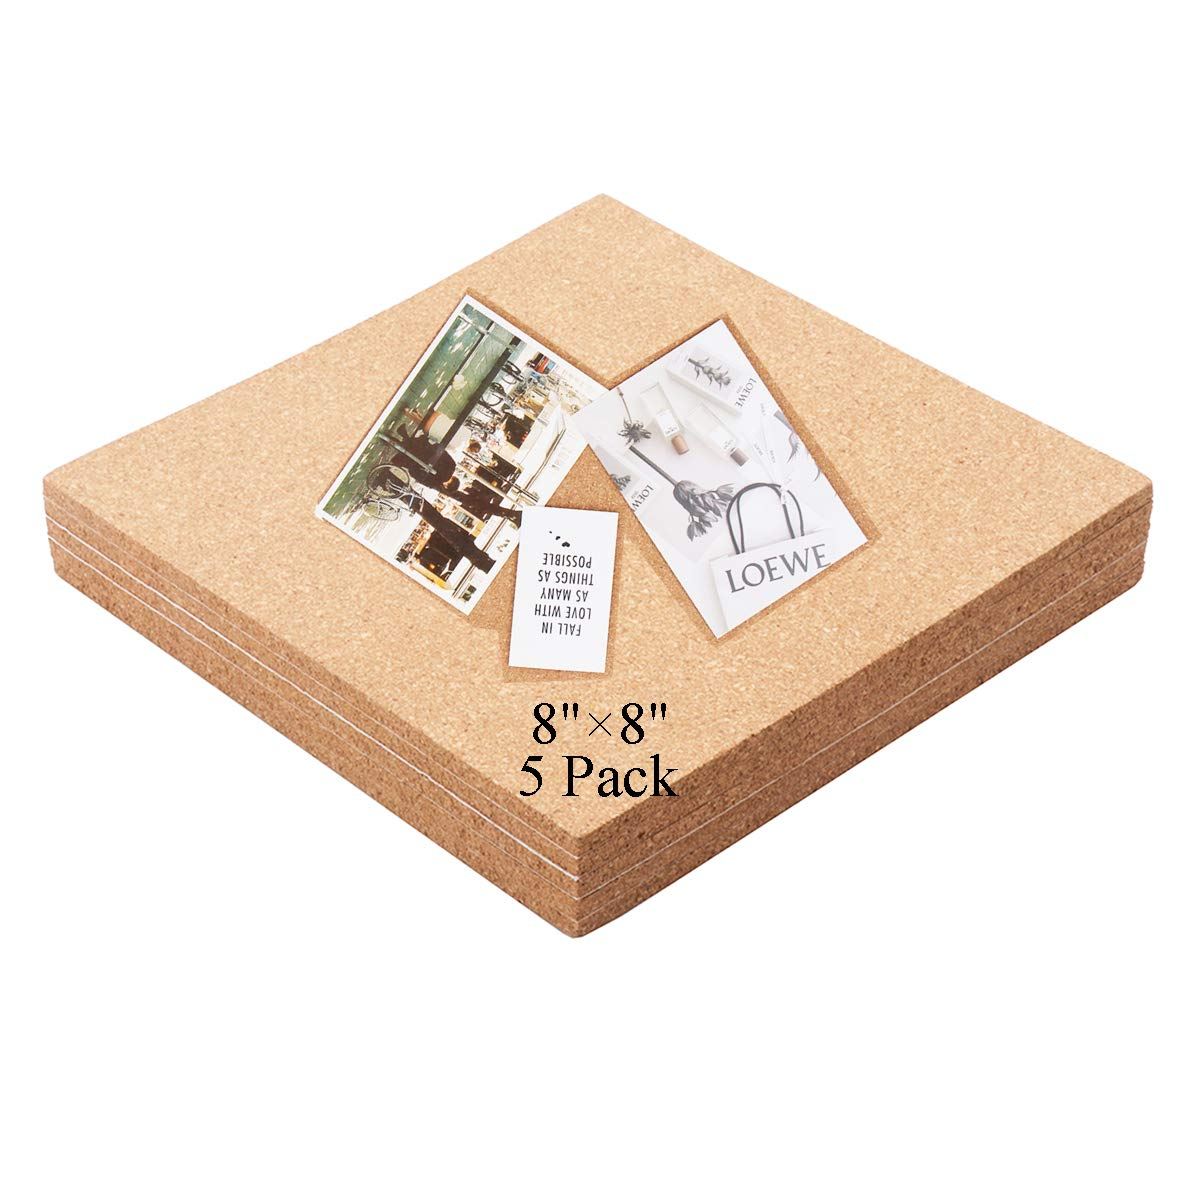 Premium Cork Tiles 8''x8'' - 1/4'' Thick -Self-Adhesive Sticker Cork Board Wall Art Idea - Bulletin Board - Mini Wall - Ultra Strong Self Adhesive Backing - 5 Pack